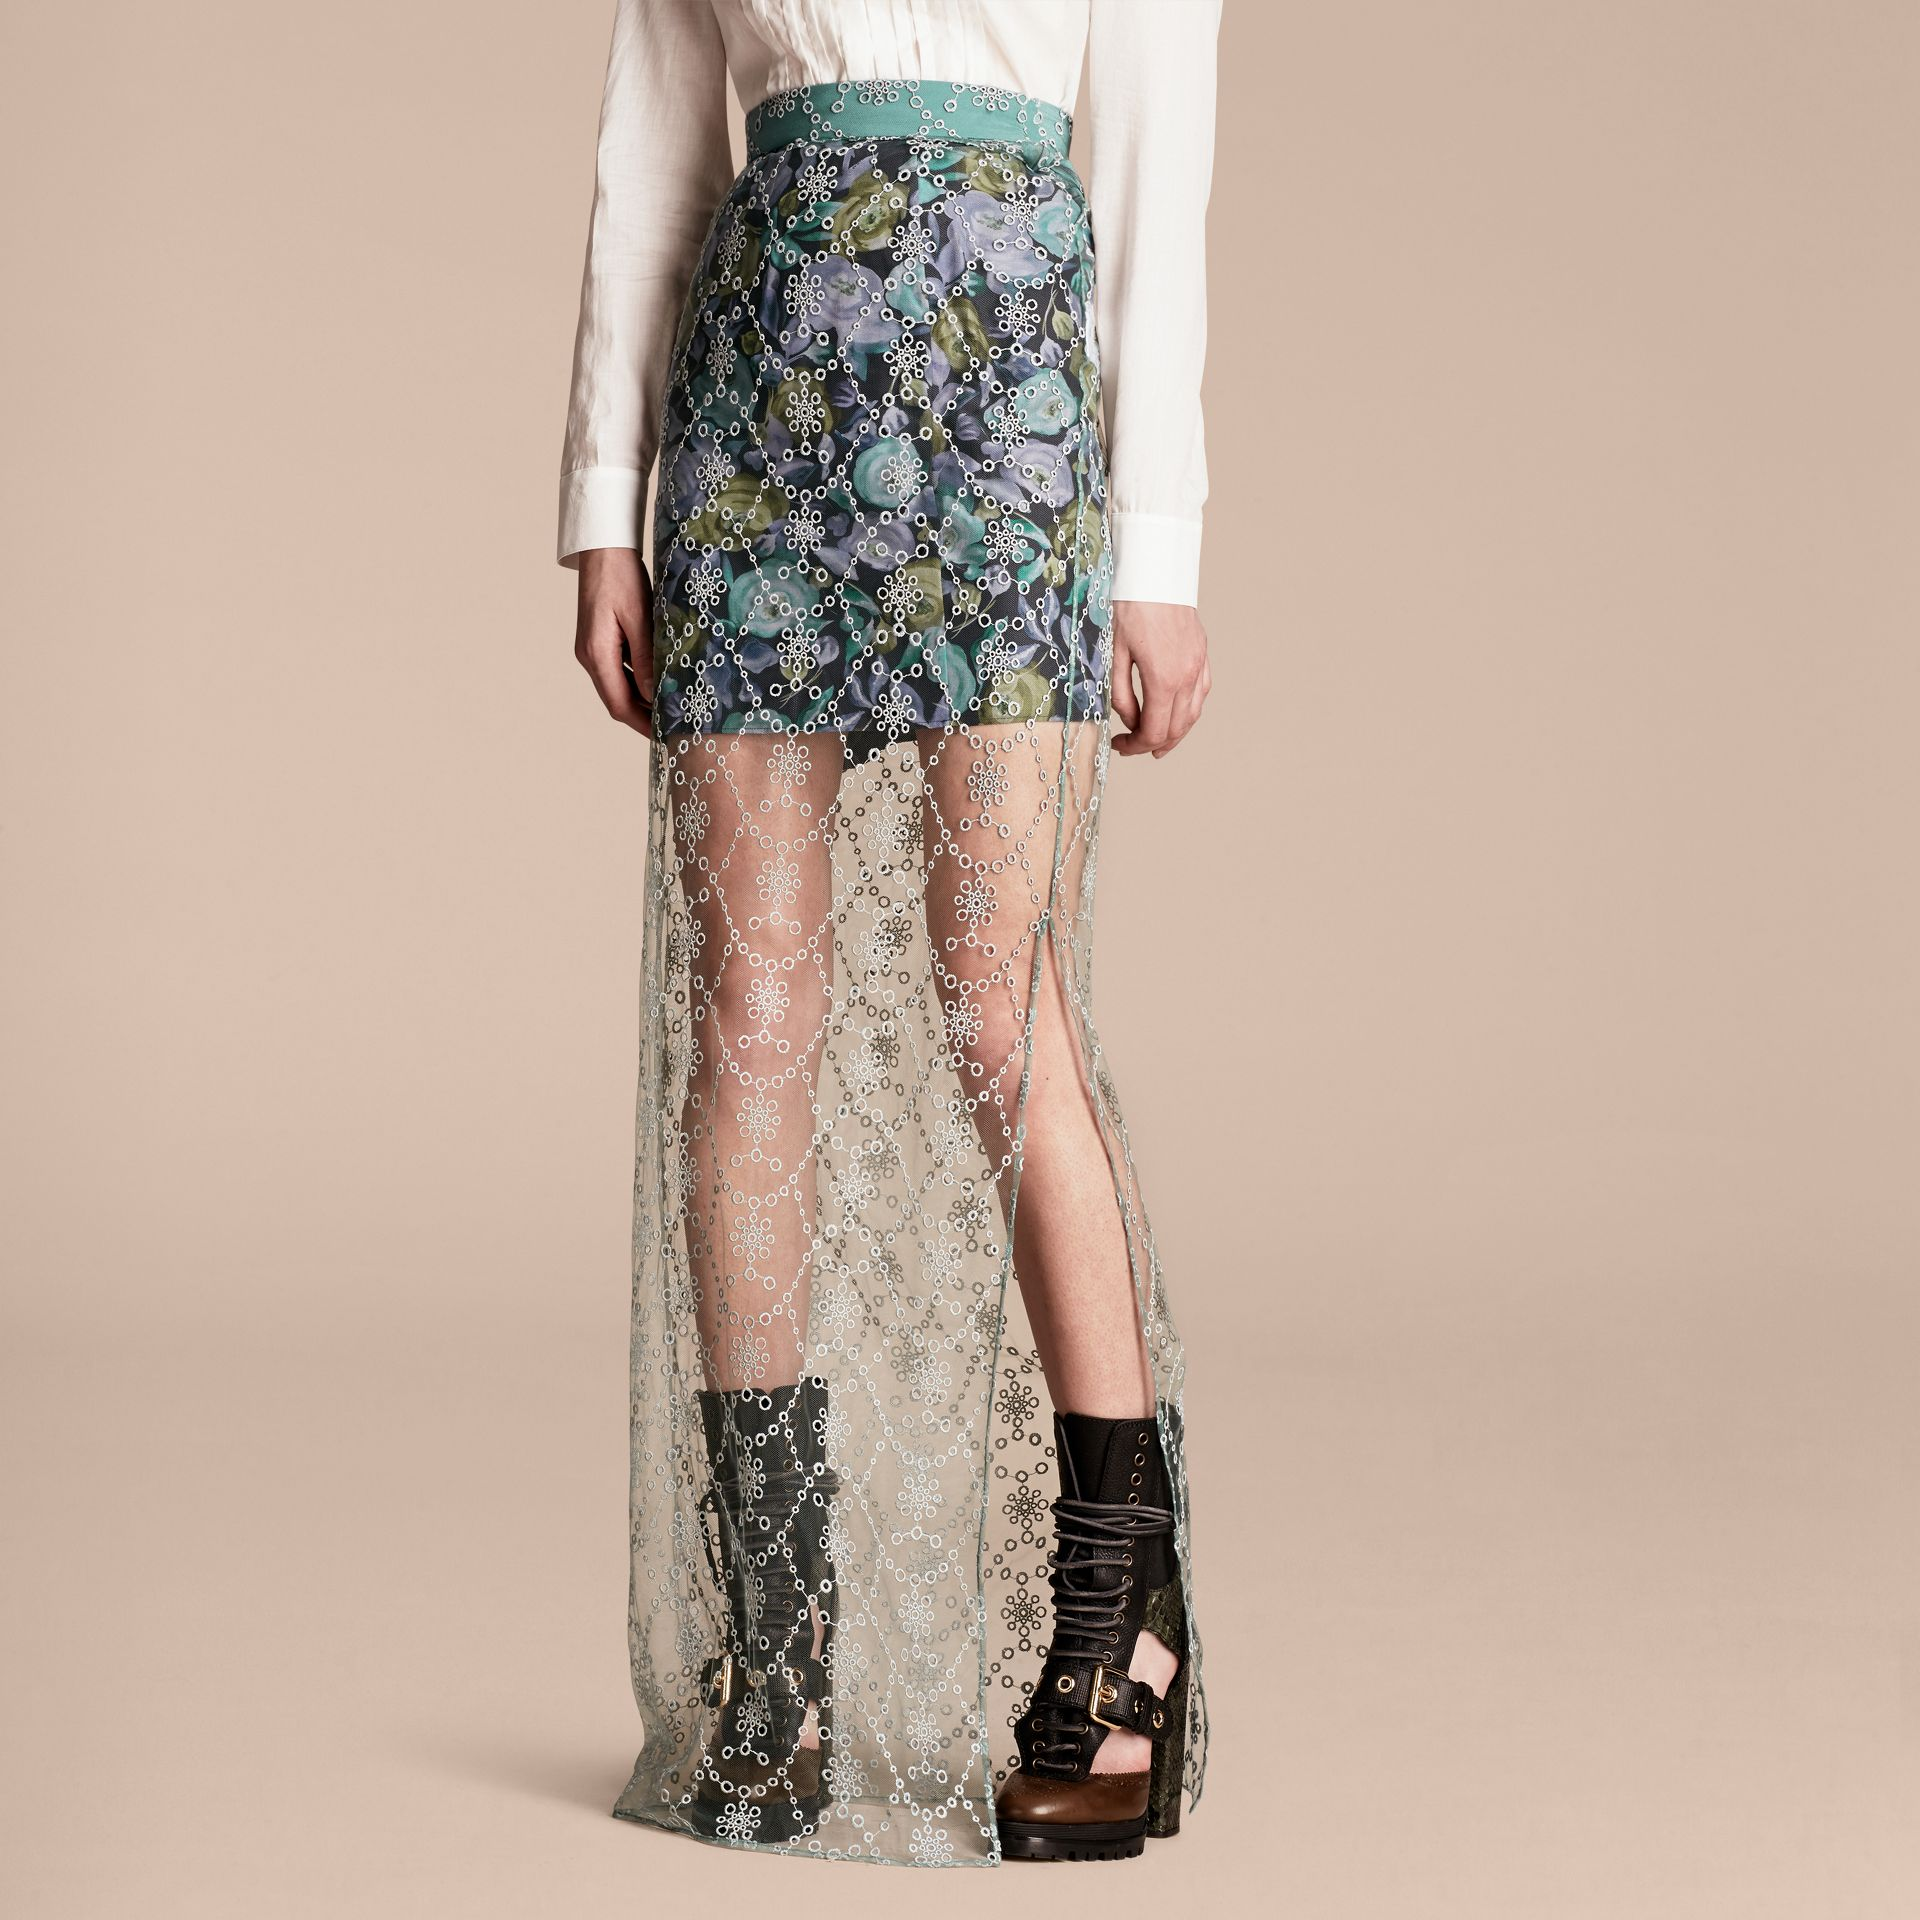 Aqua green Embroidered Tulle Column Skirt with Rose Print Lining - gallery image 1